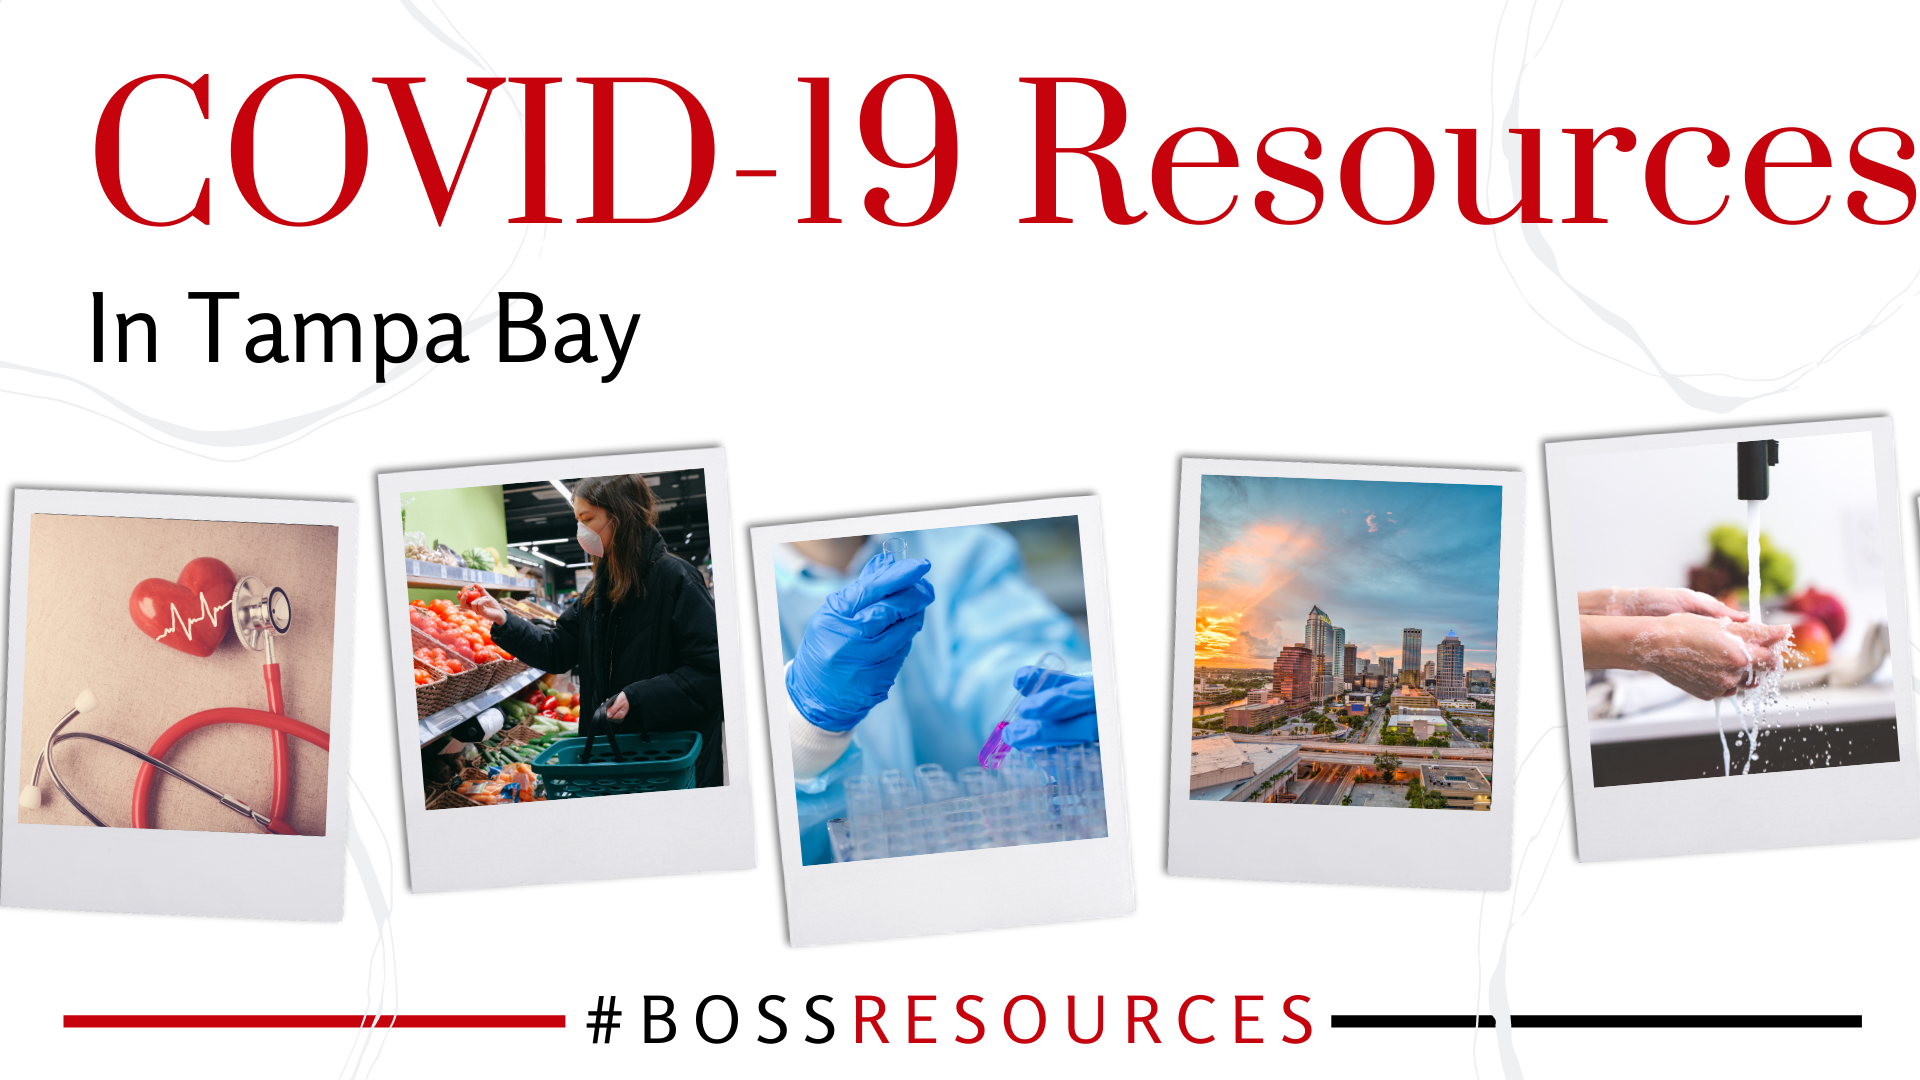 COVID-19 Resources in Tampa Bay